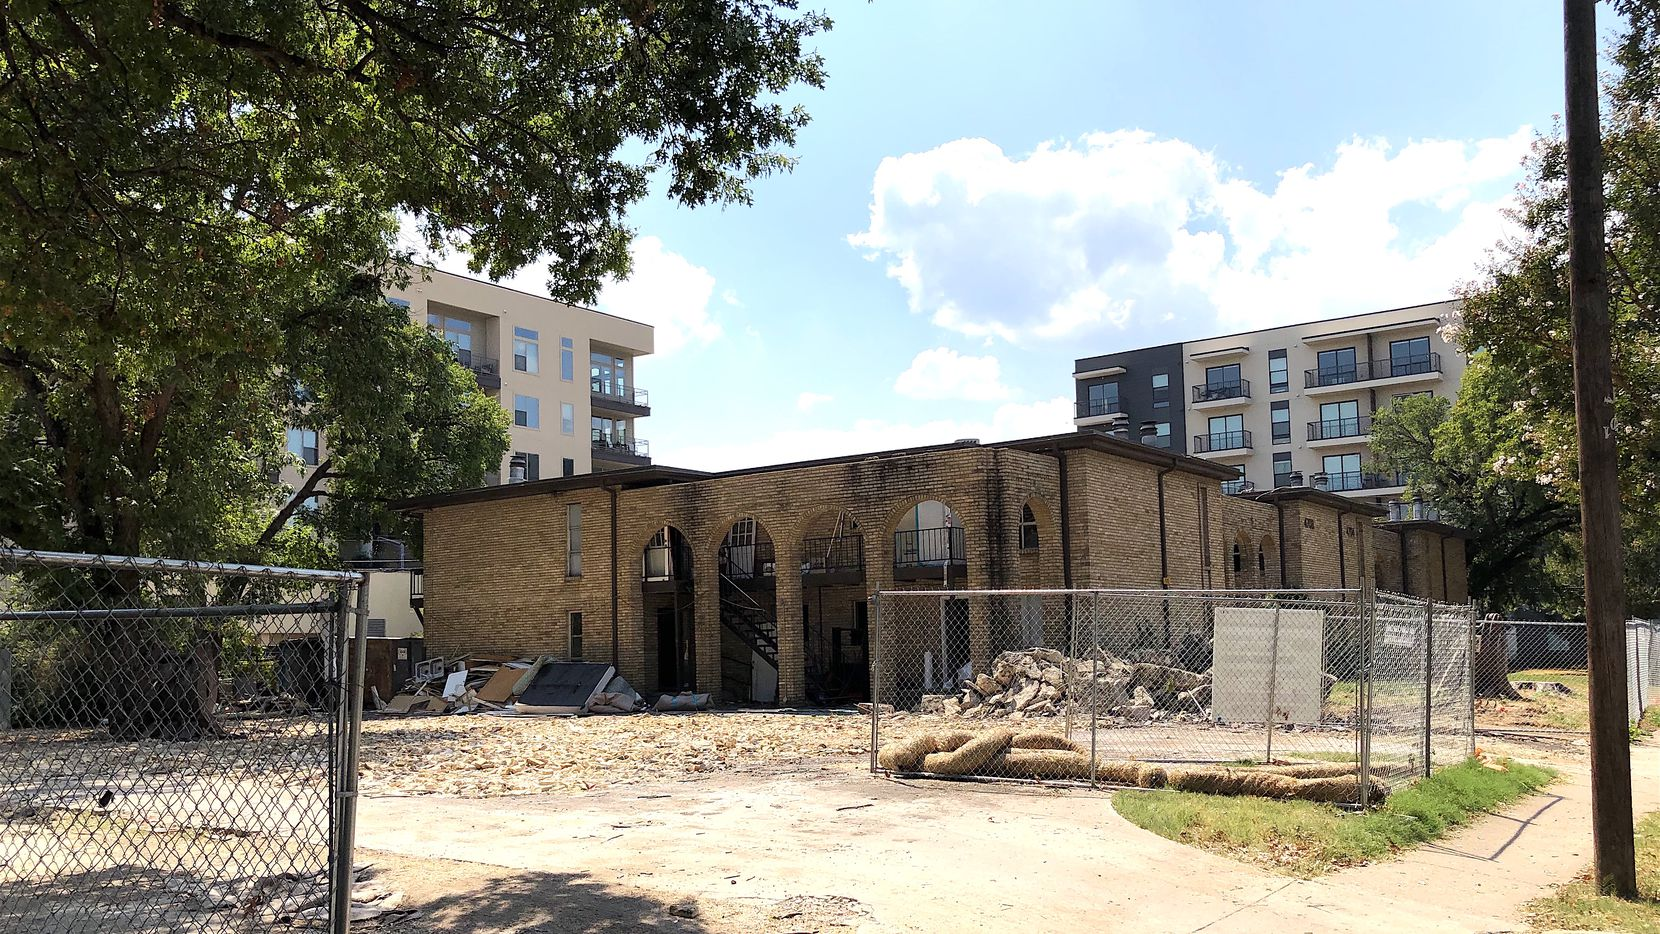 Demolition crews are busy knocking down old apartments and homes on McKinney Avenue.